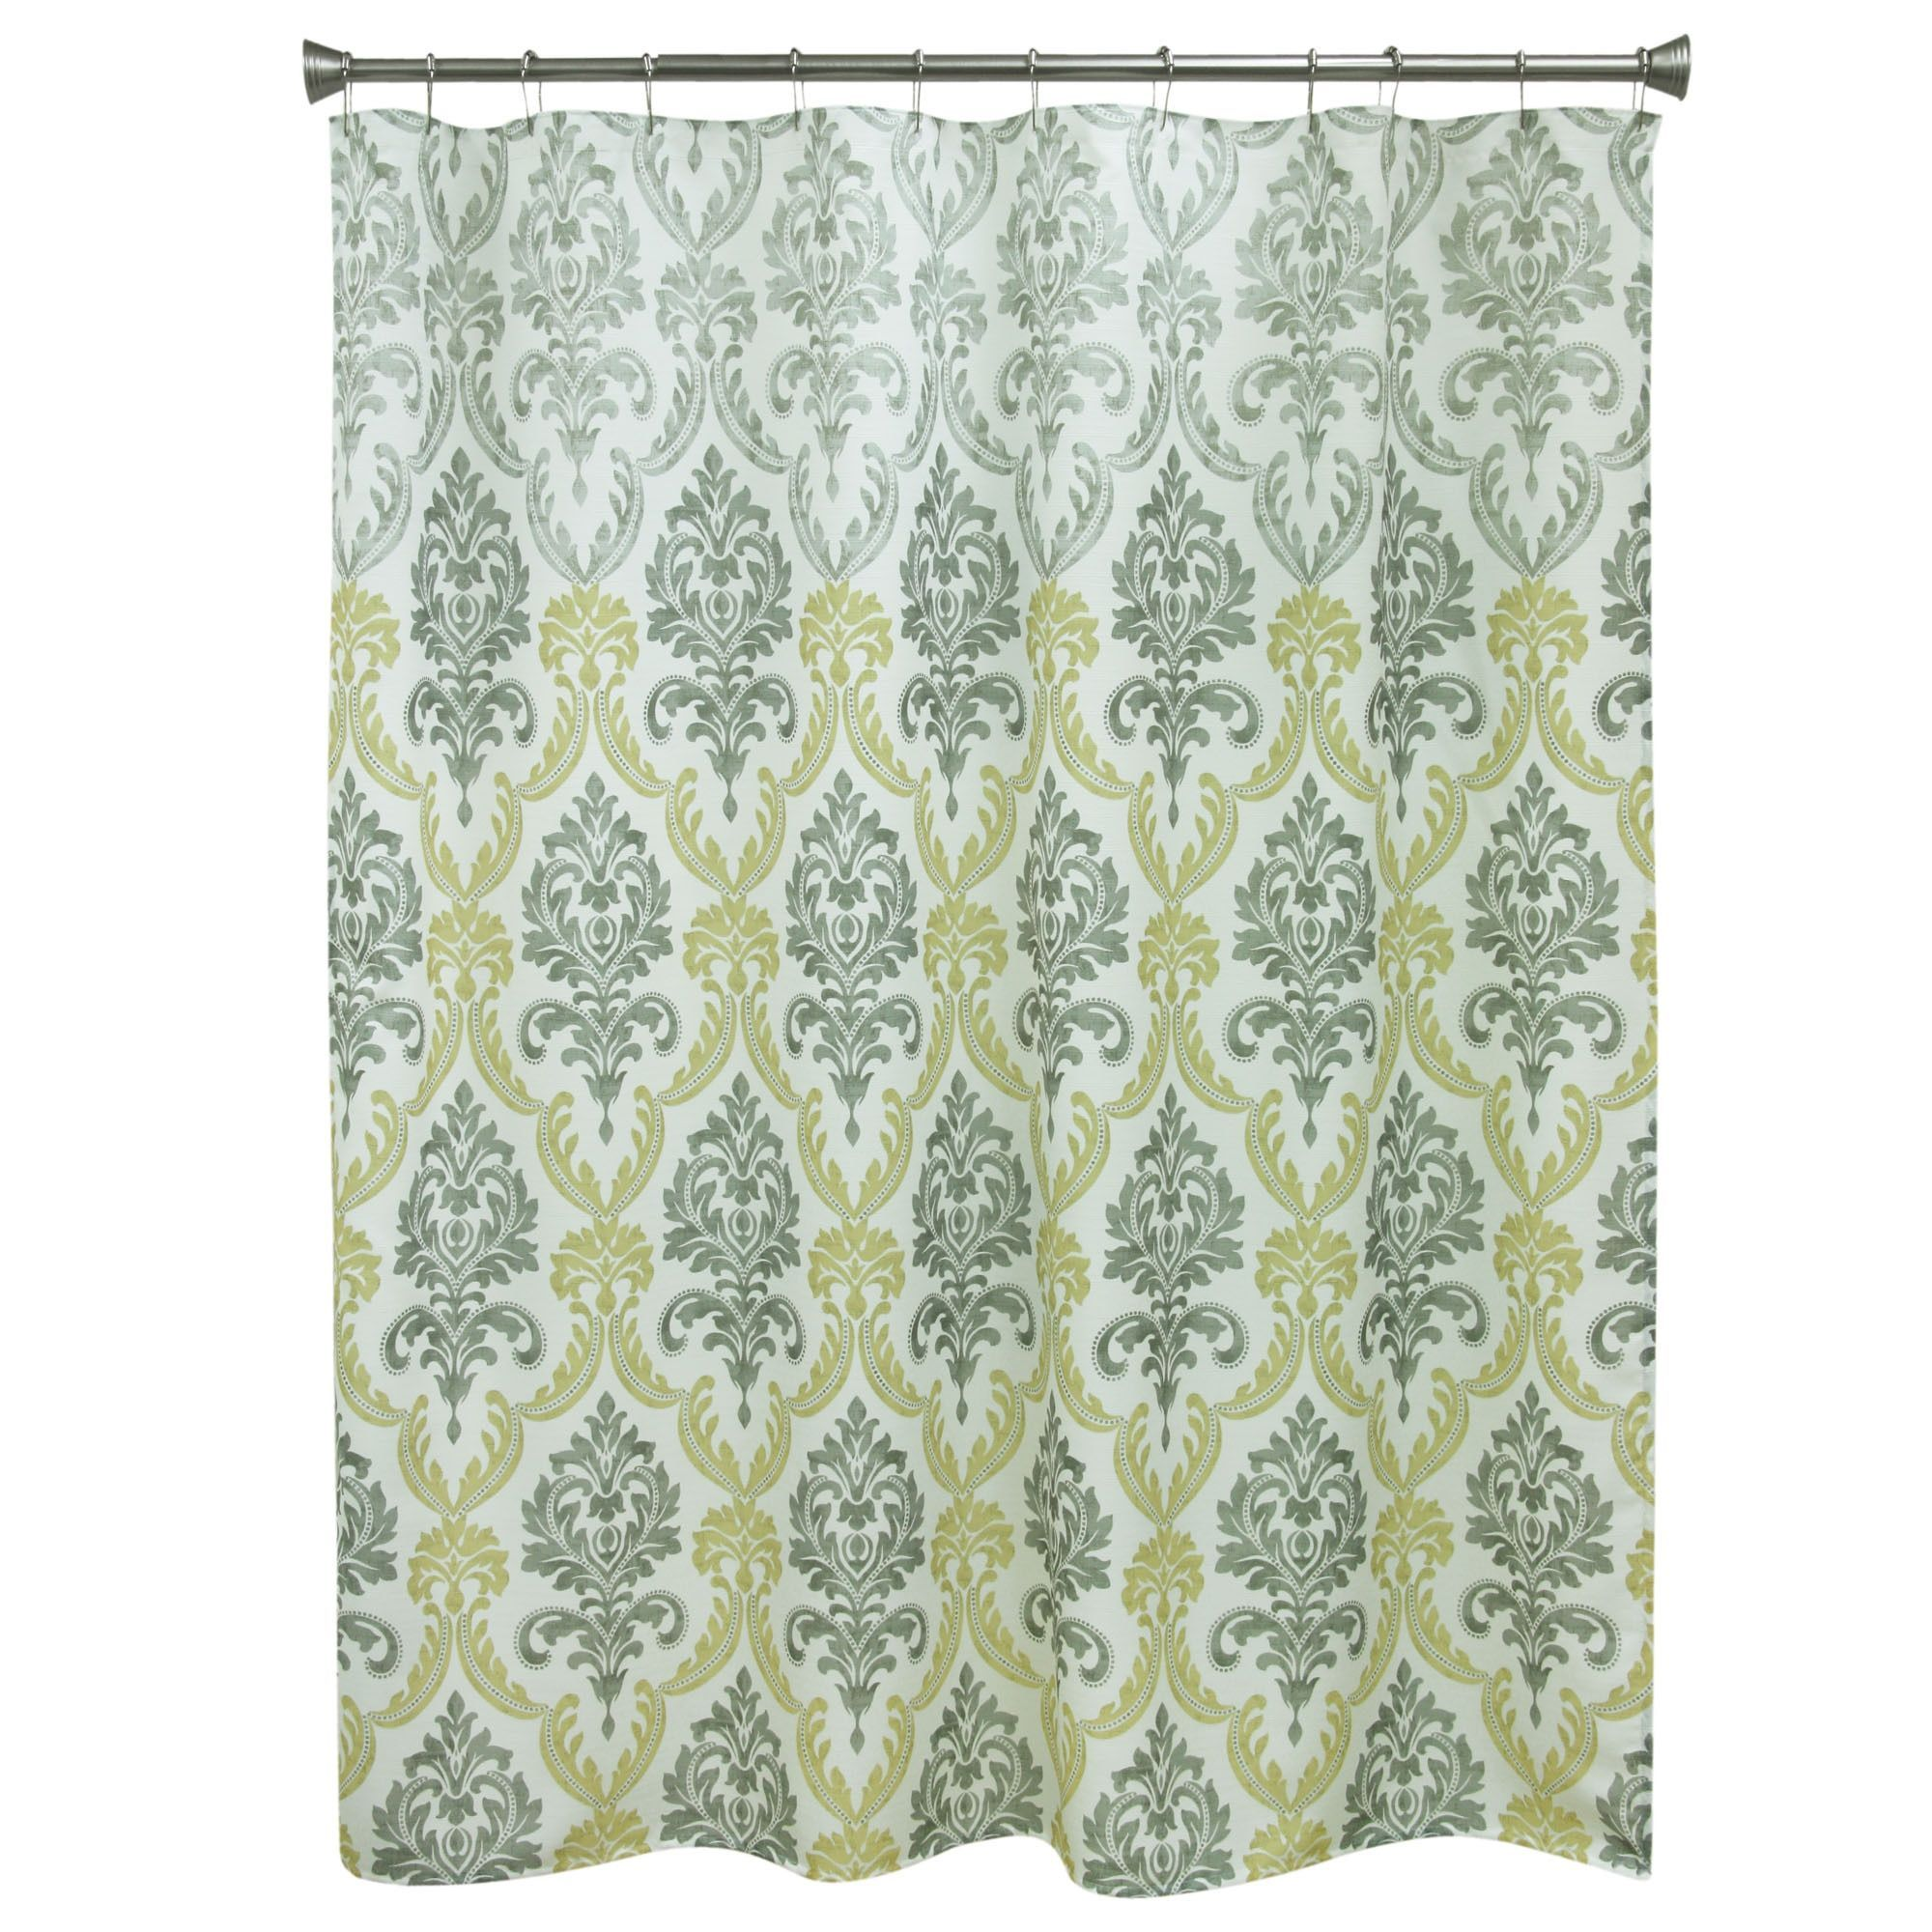 Portico Yellow Fabric Shower Curtain